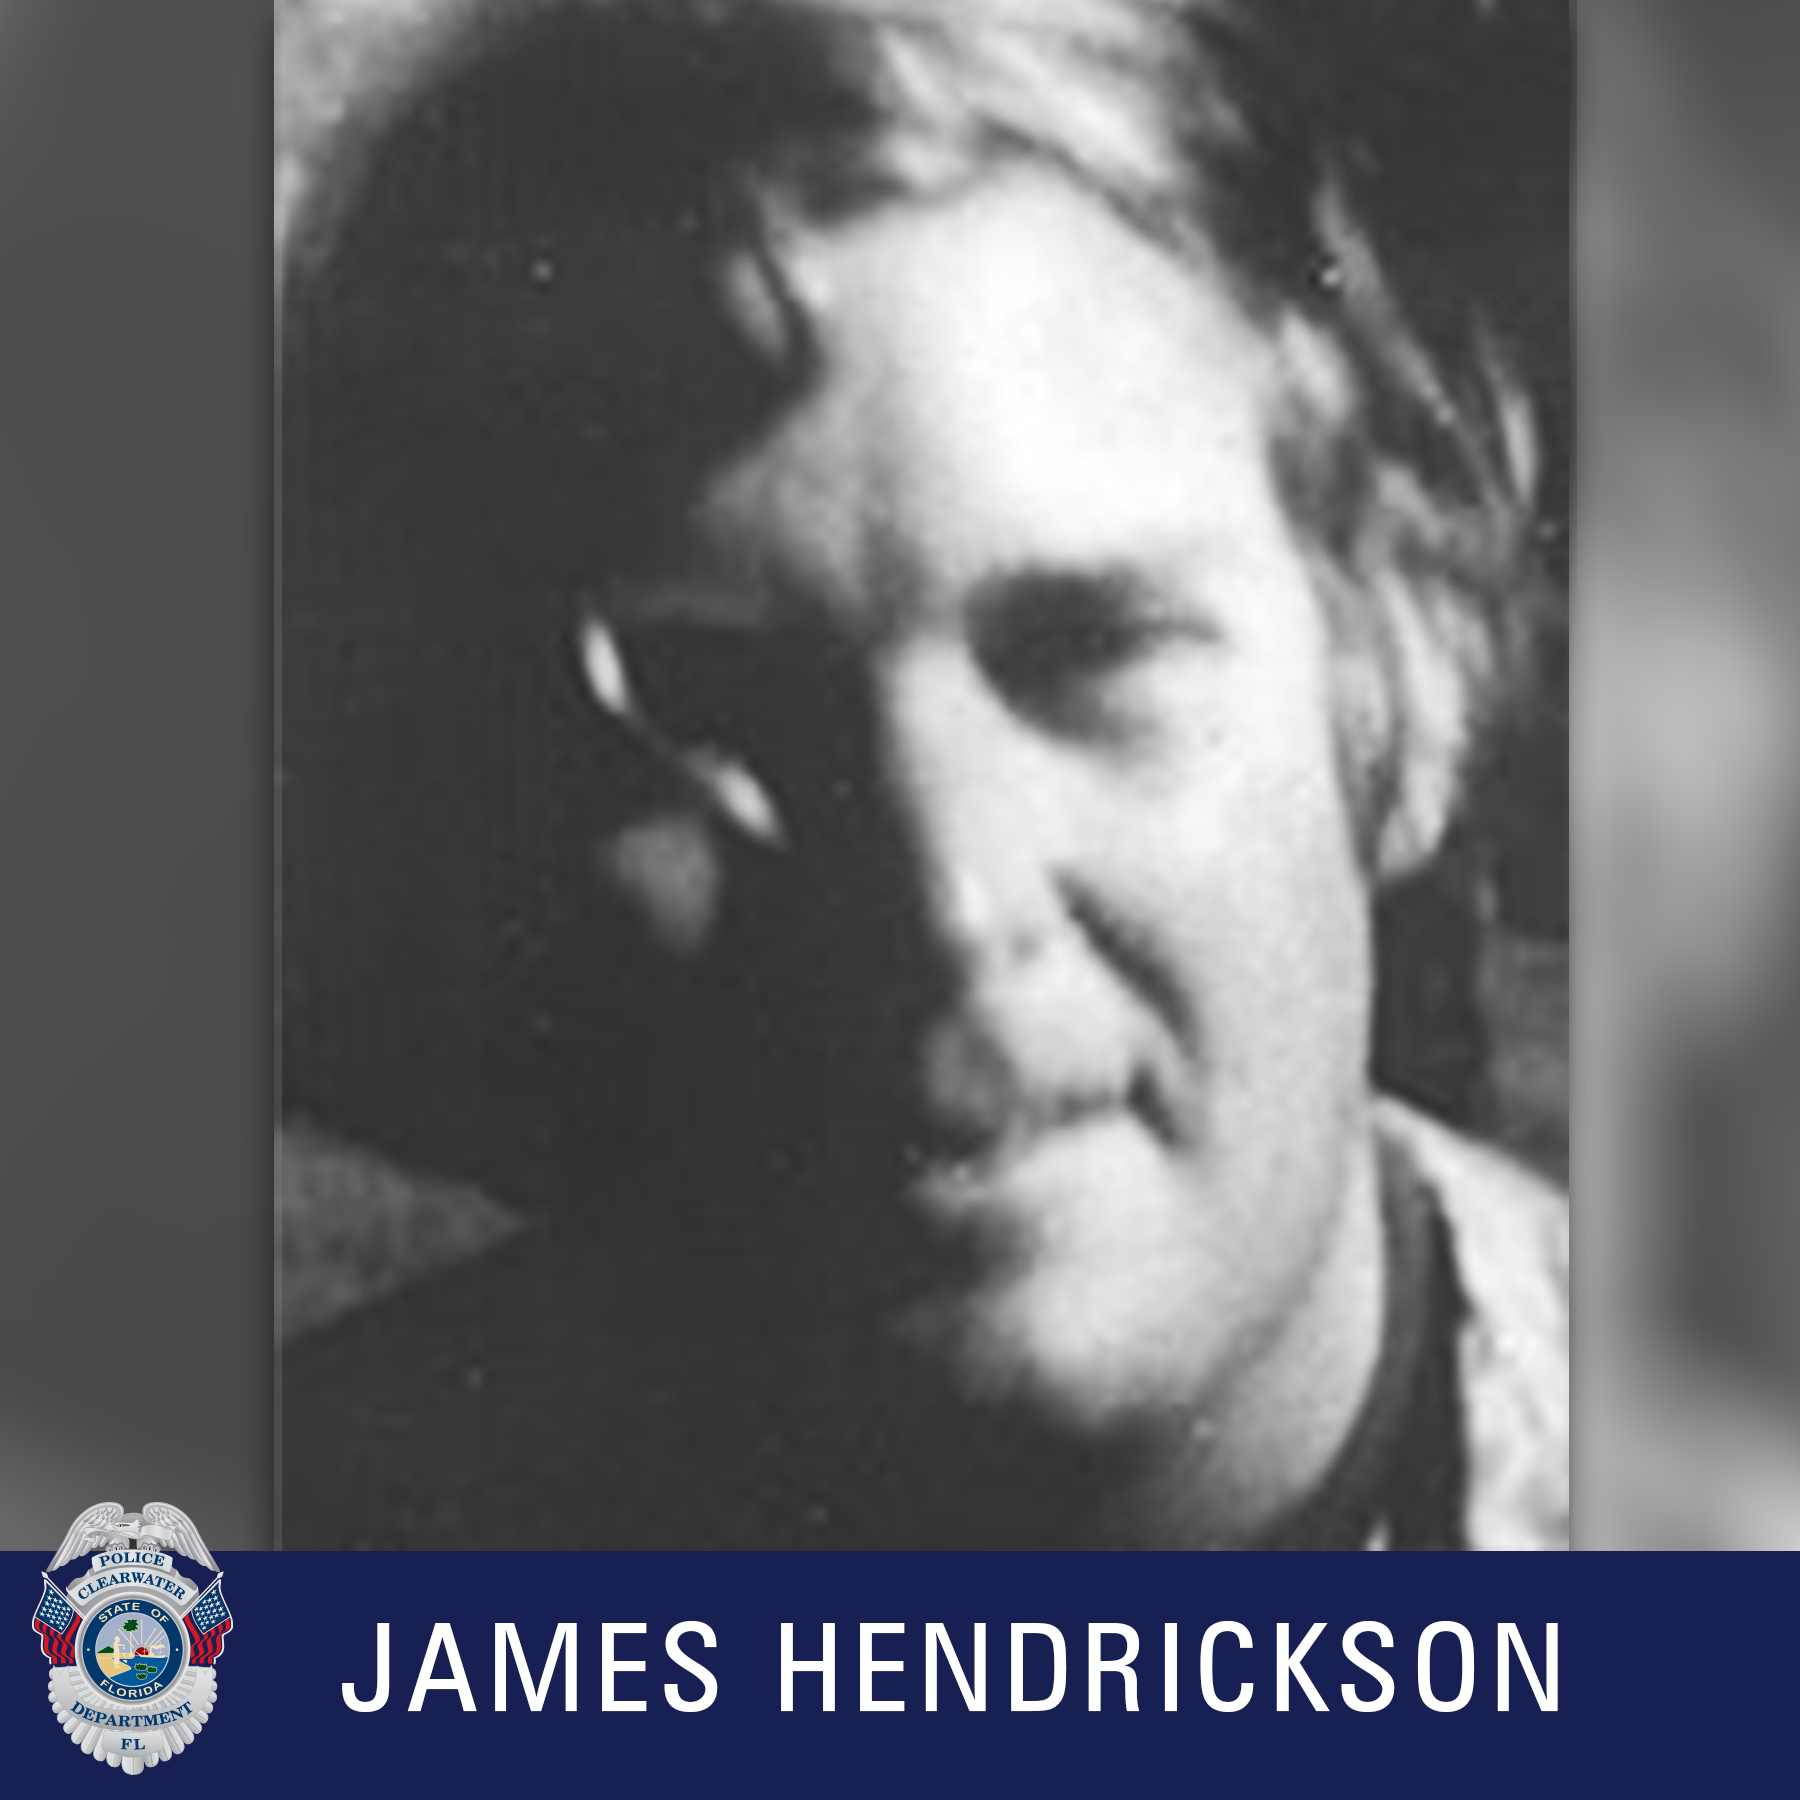 James Hendrickson, Clearwater Police Department Shield, Black and white photo of man smiling off camera